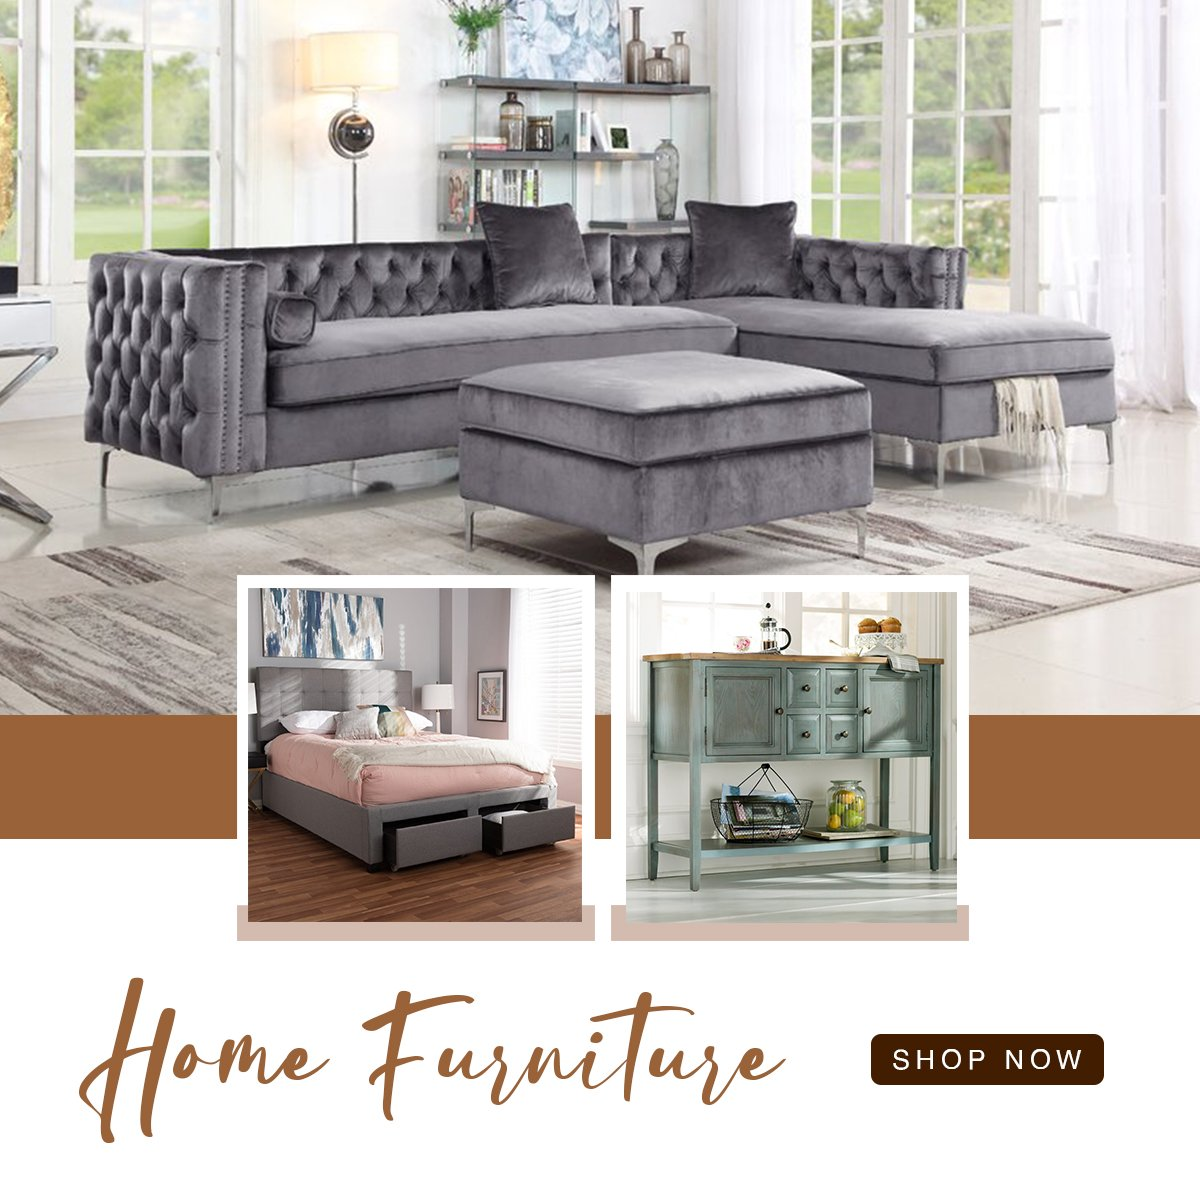 leading furniture store